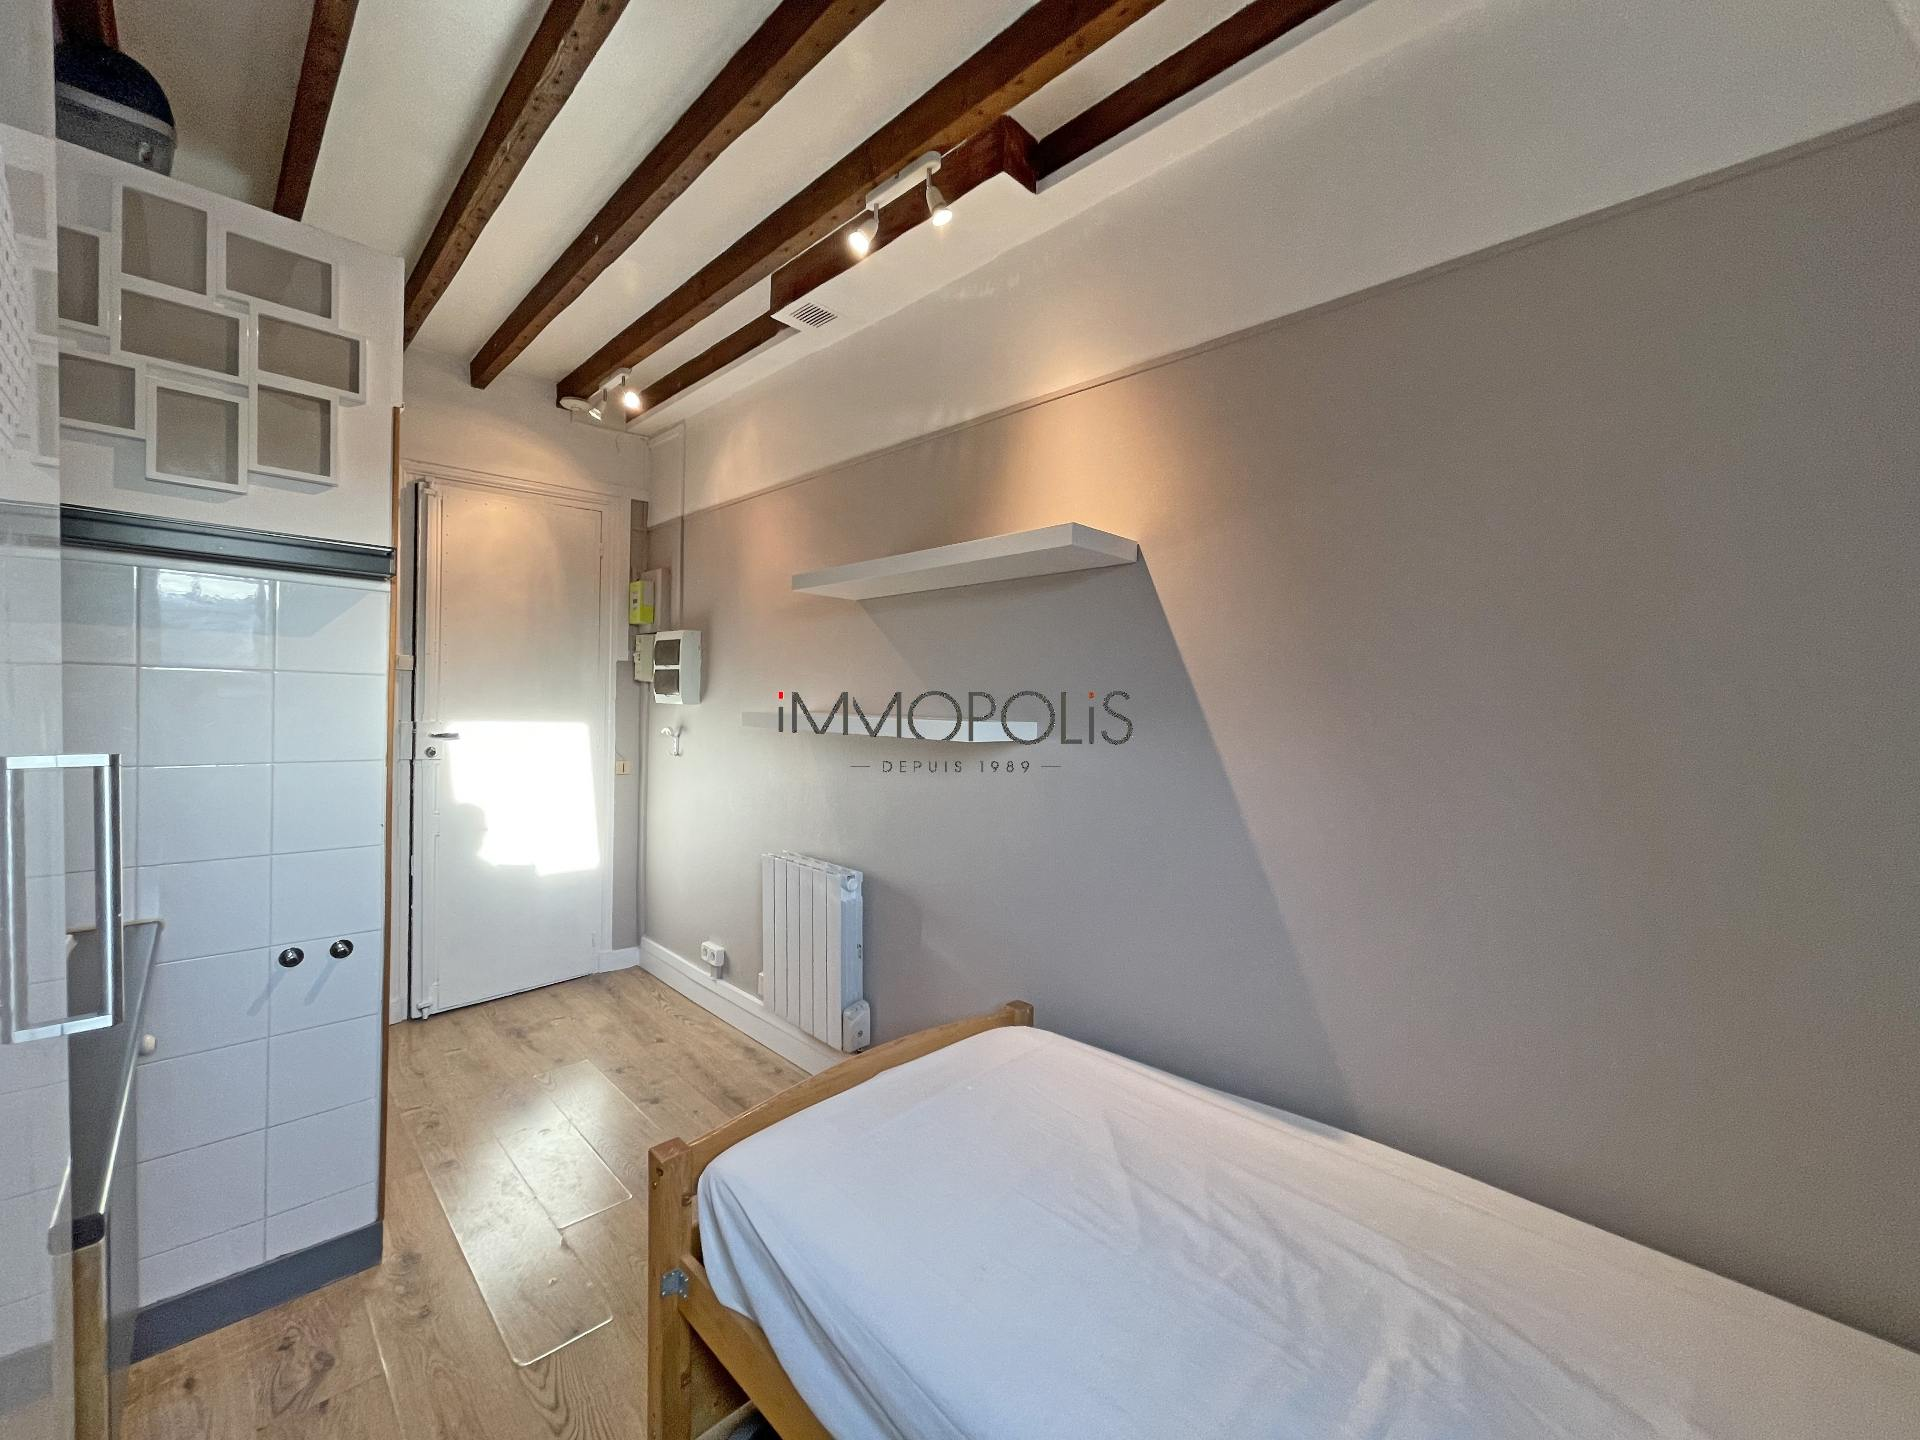 Europe district (rue Clapeyron in the 8th arrondissement), Legally laudable studio of 9.88 m² Law Carrez located in a beautiful well maintained building 7